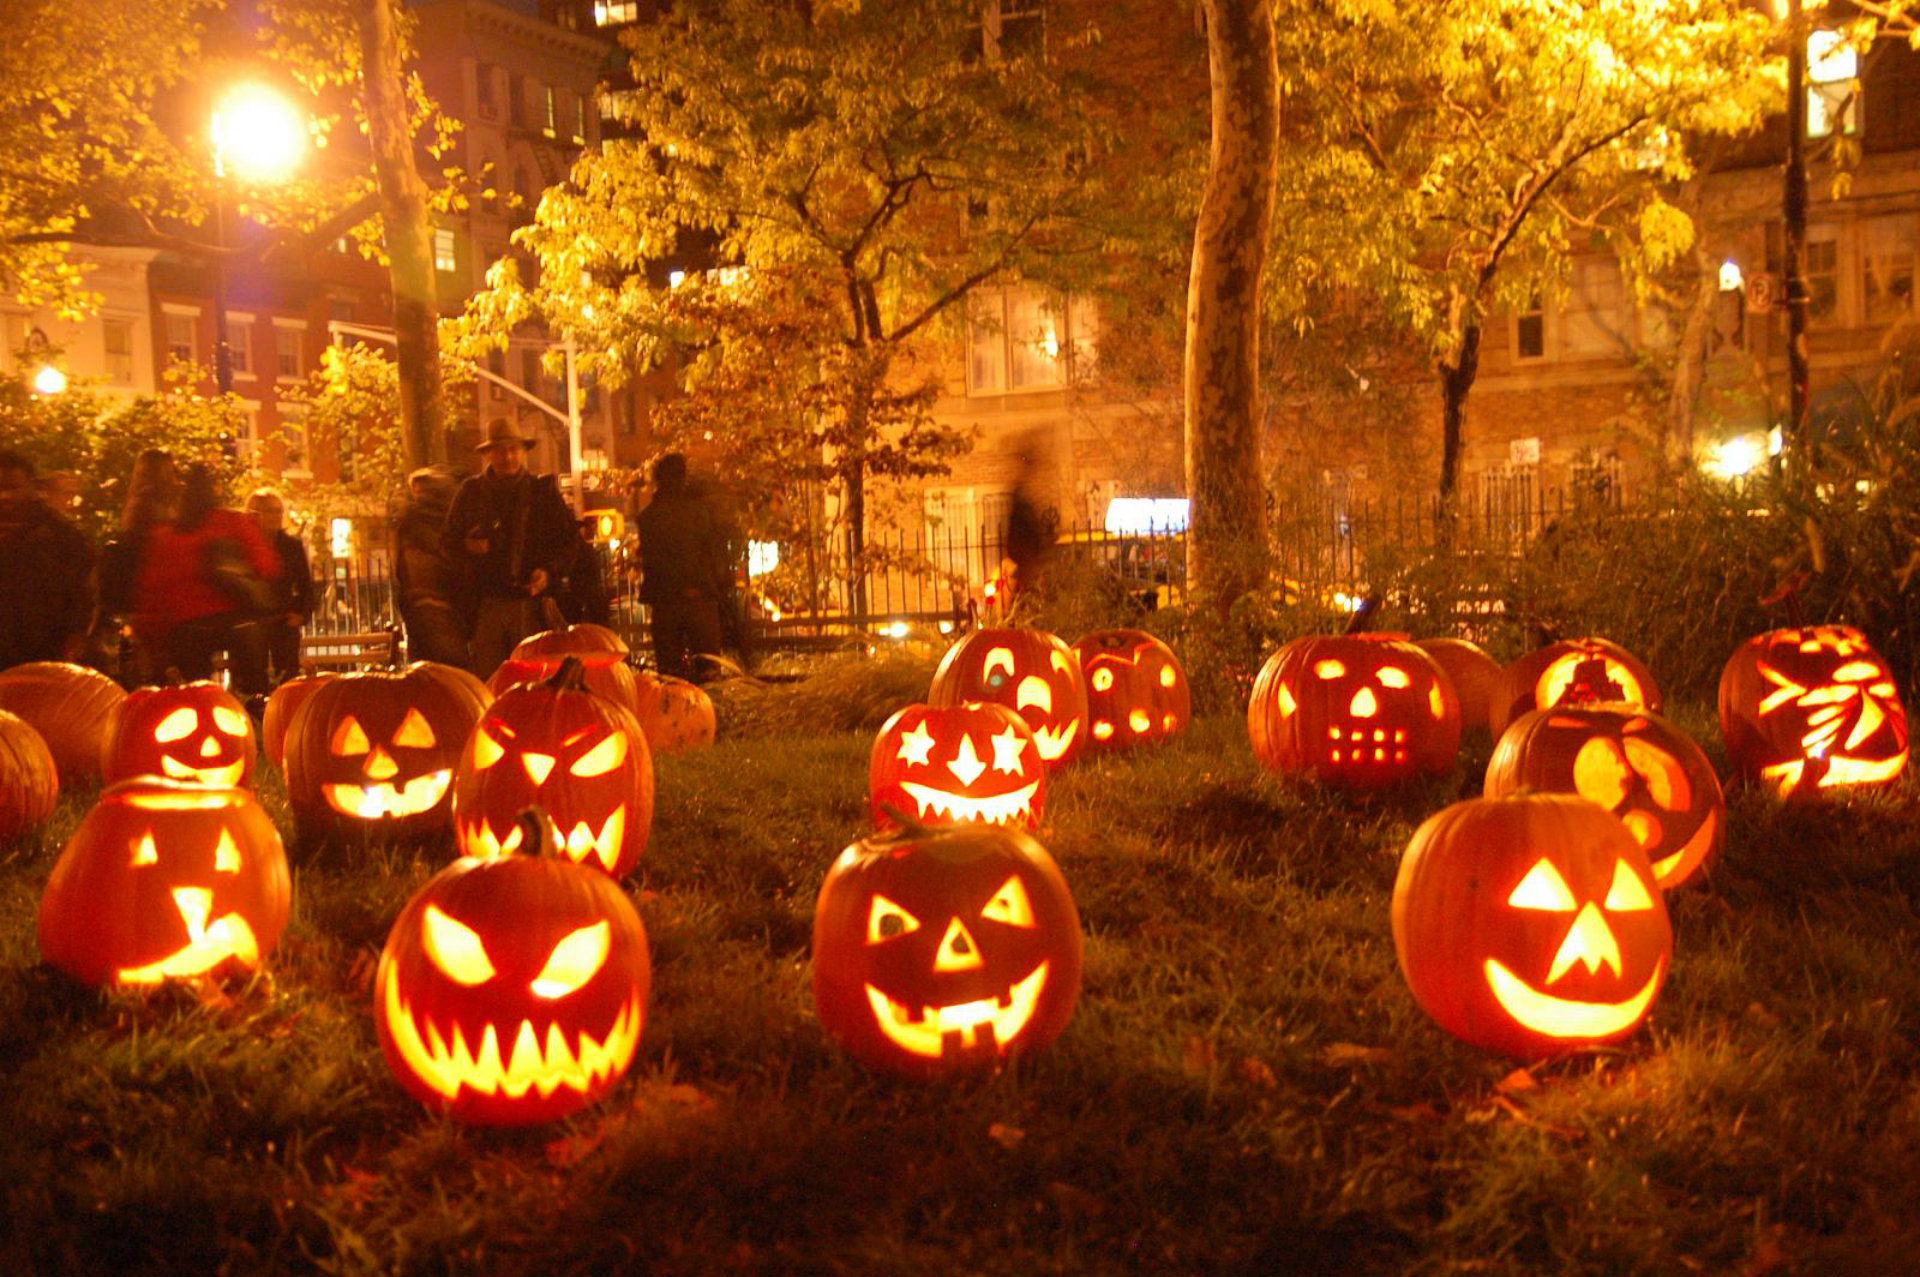 windsor essex halloween guide 2018 - tourism windsor essex pelee island